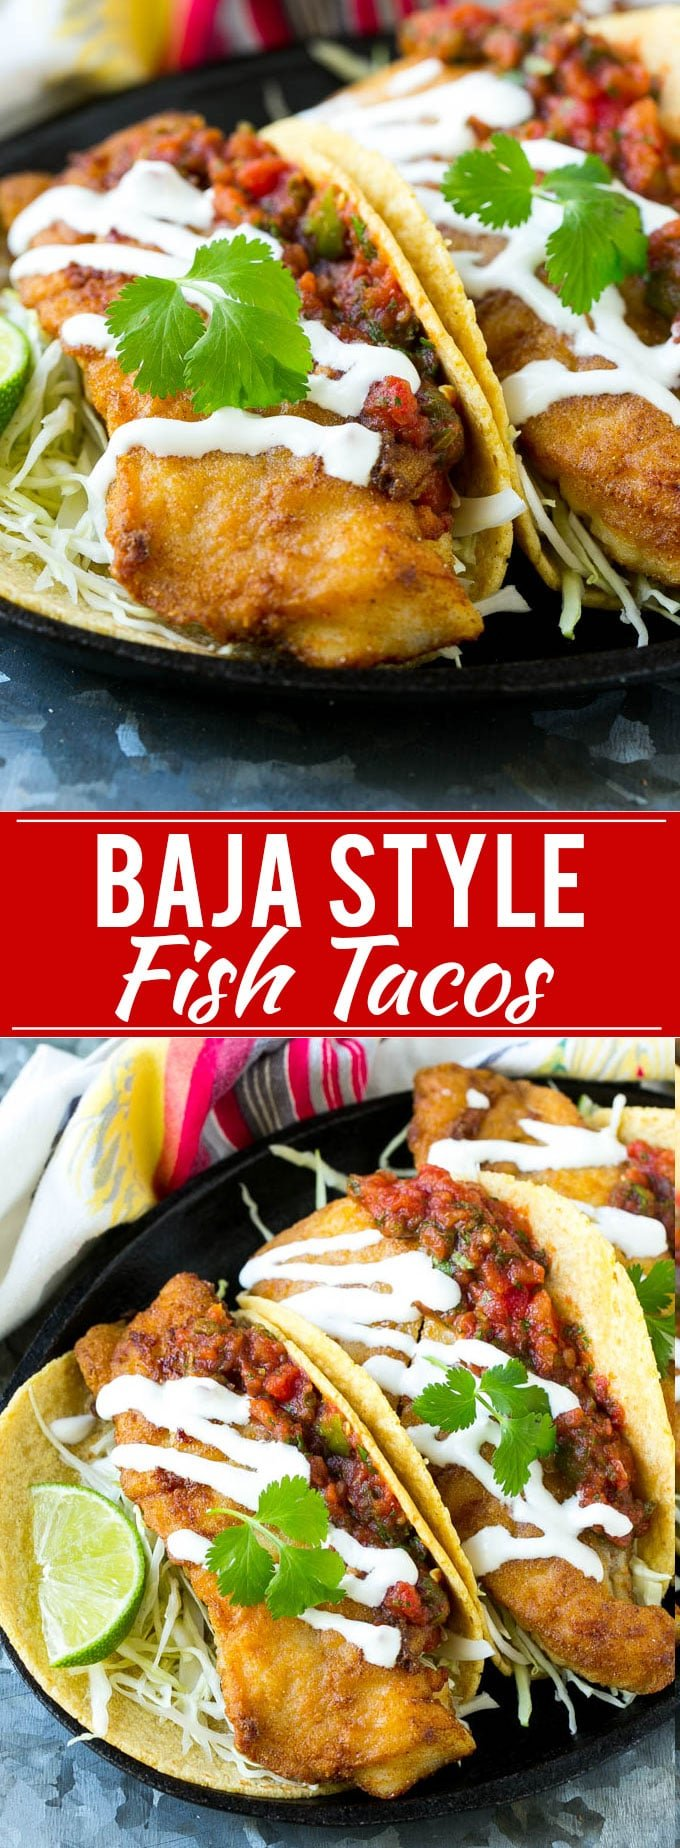 Baja Fish Tacos Recipe | Fried Fish Tacos | Crispy Fish Tacos | Easy Fish Tacos Recipe #fish #tacos #dinner #dinneratthezoo